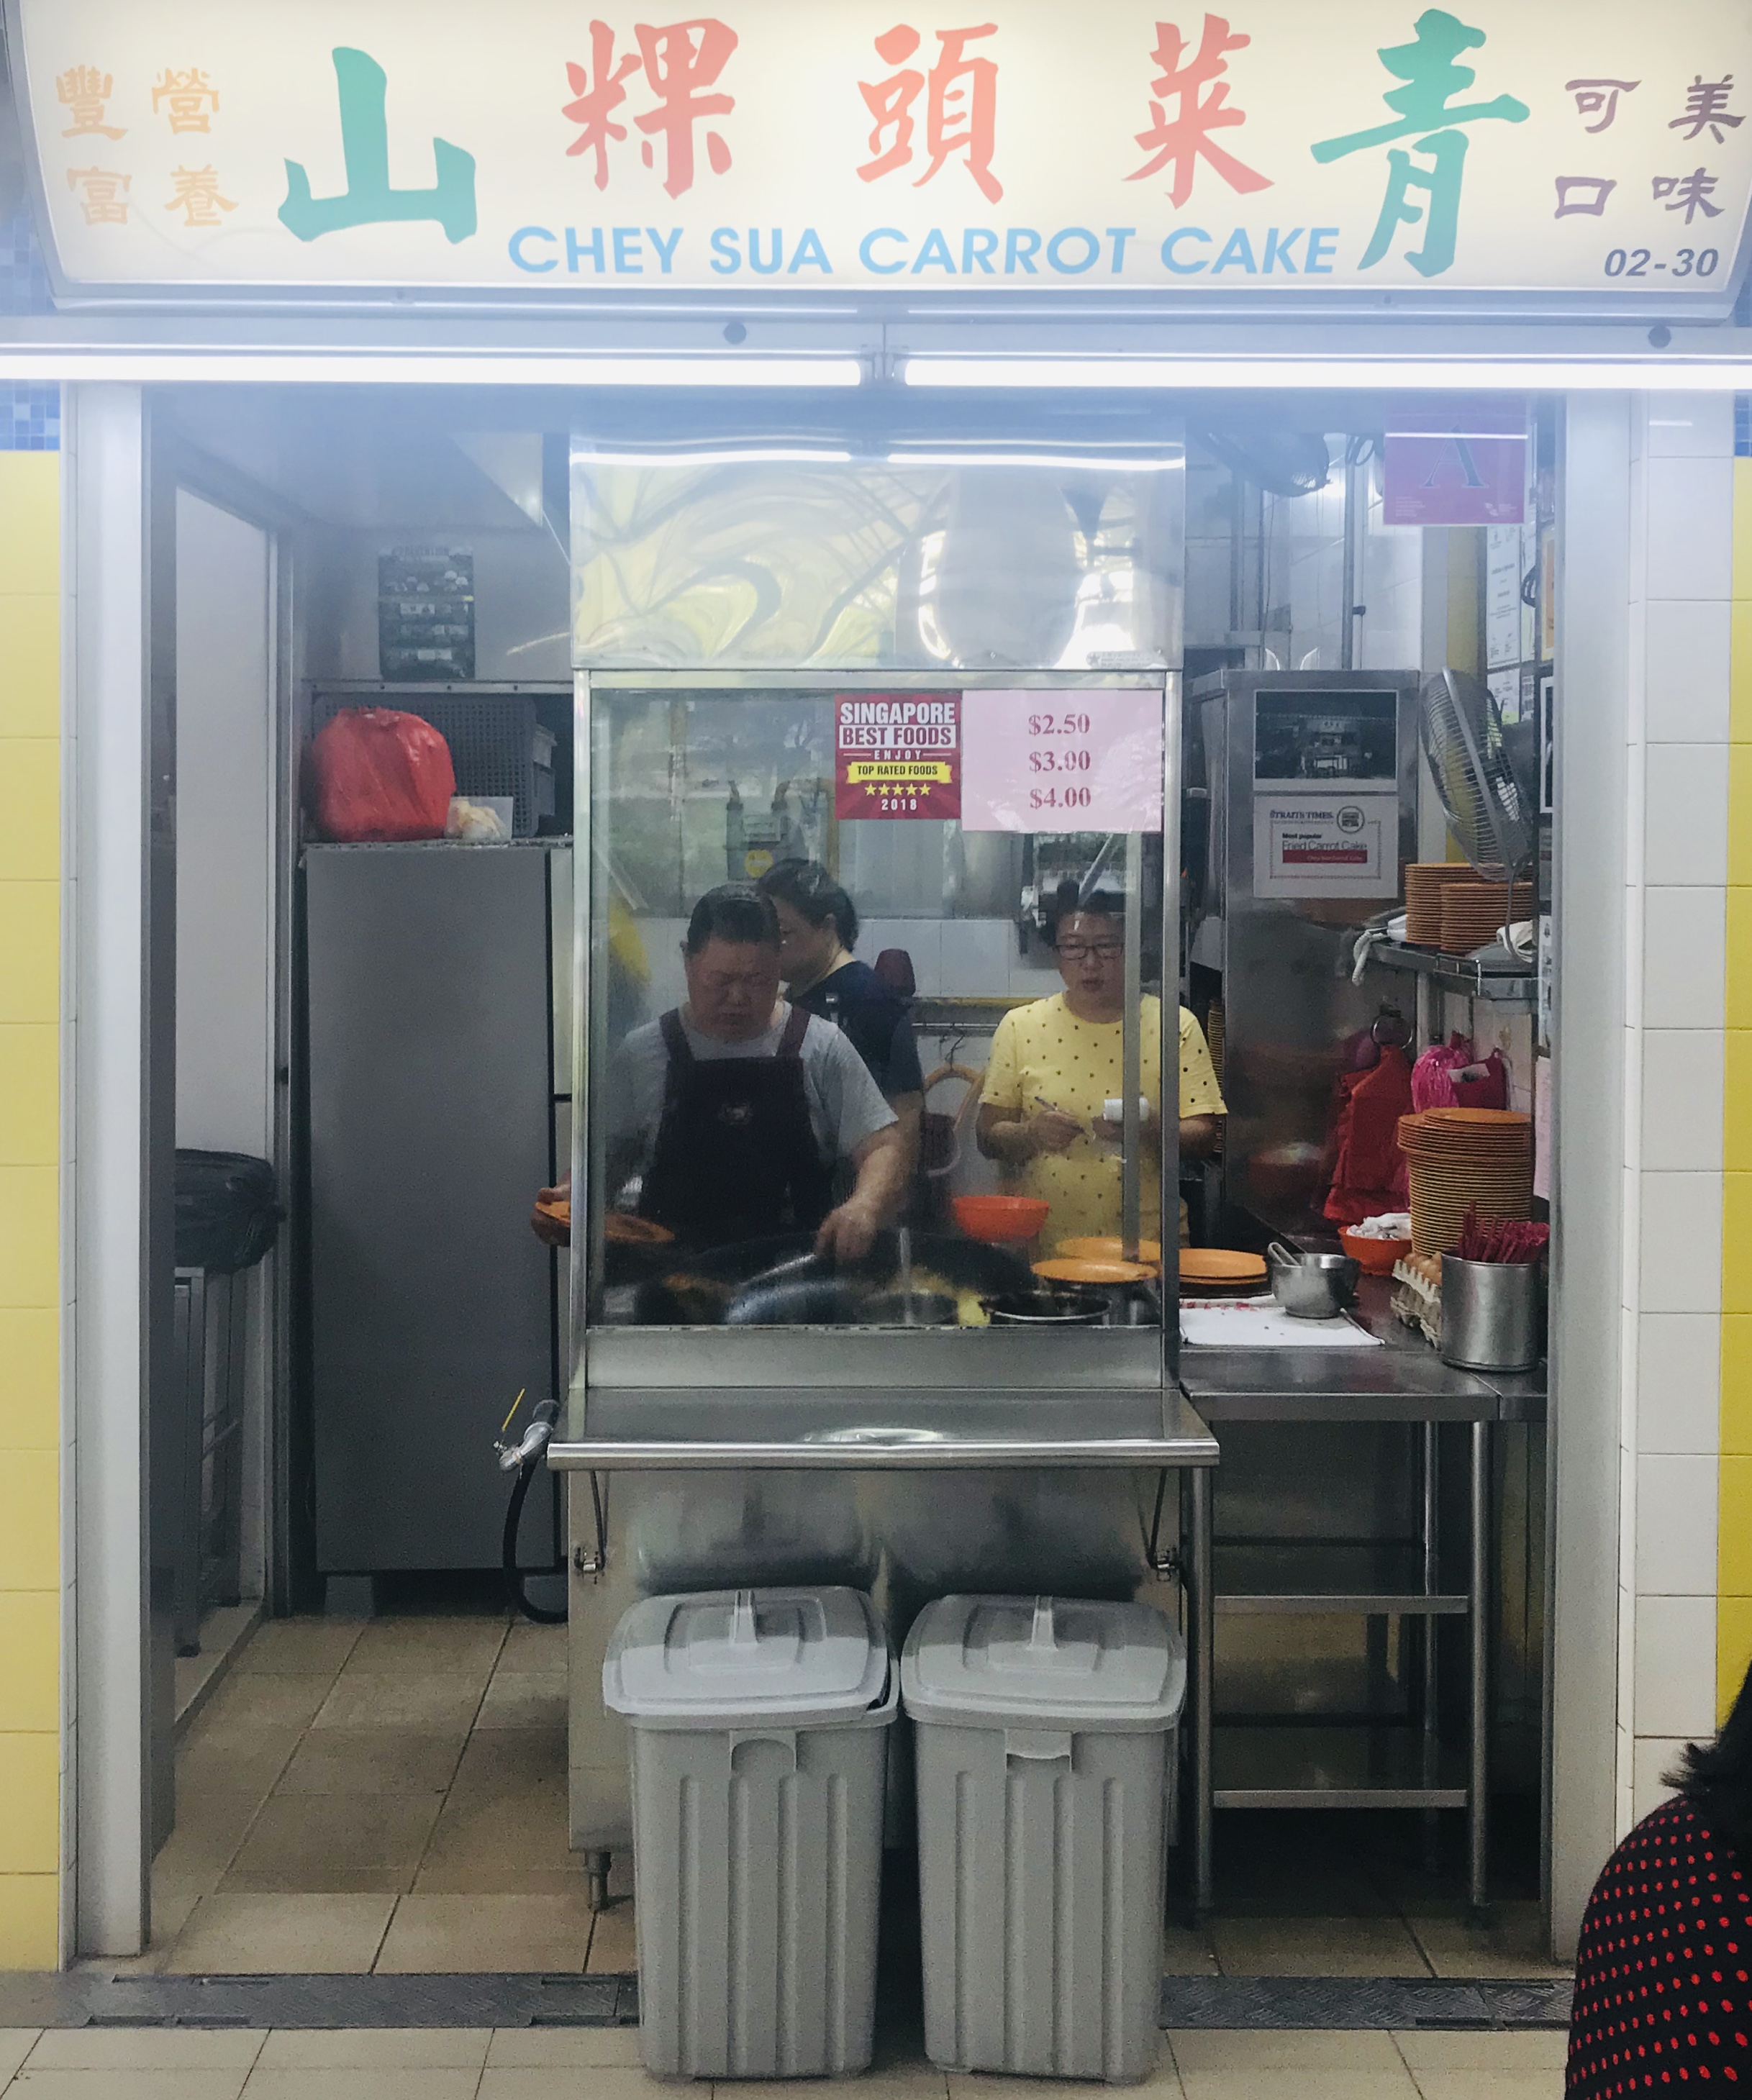 Chey Sua Carrot Cake - Stall Front